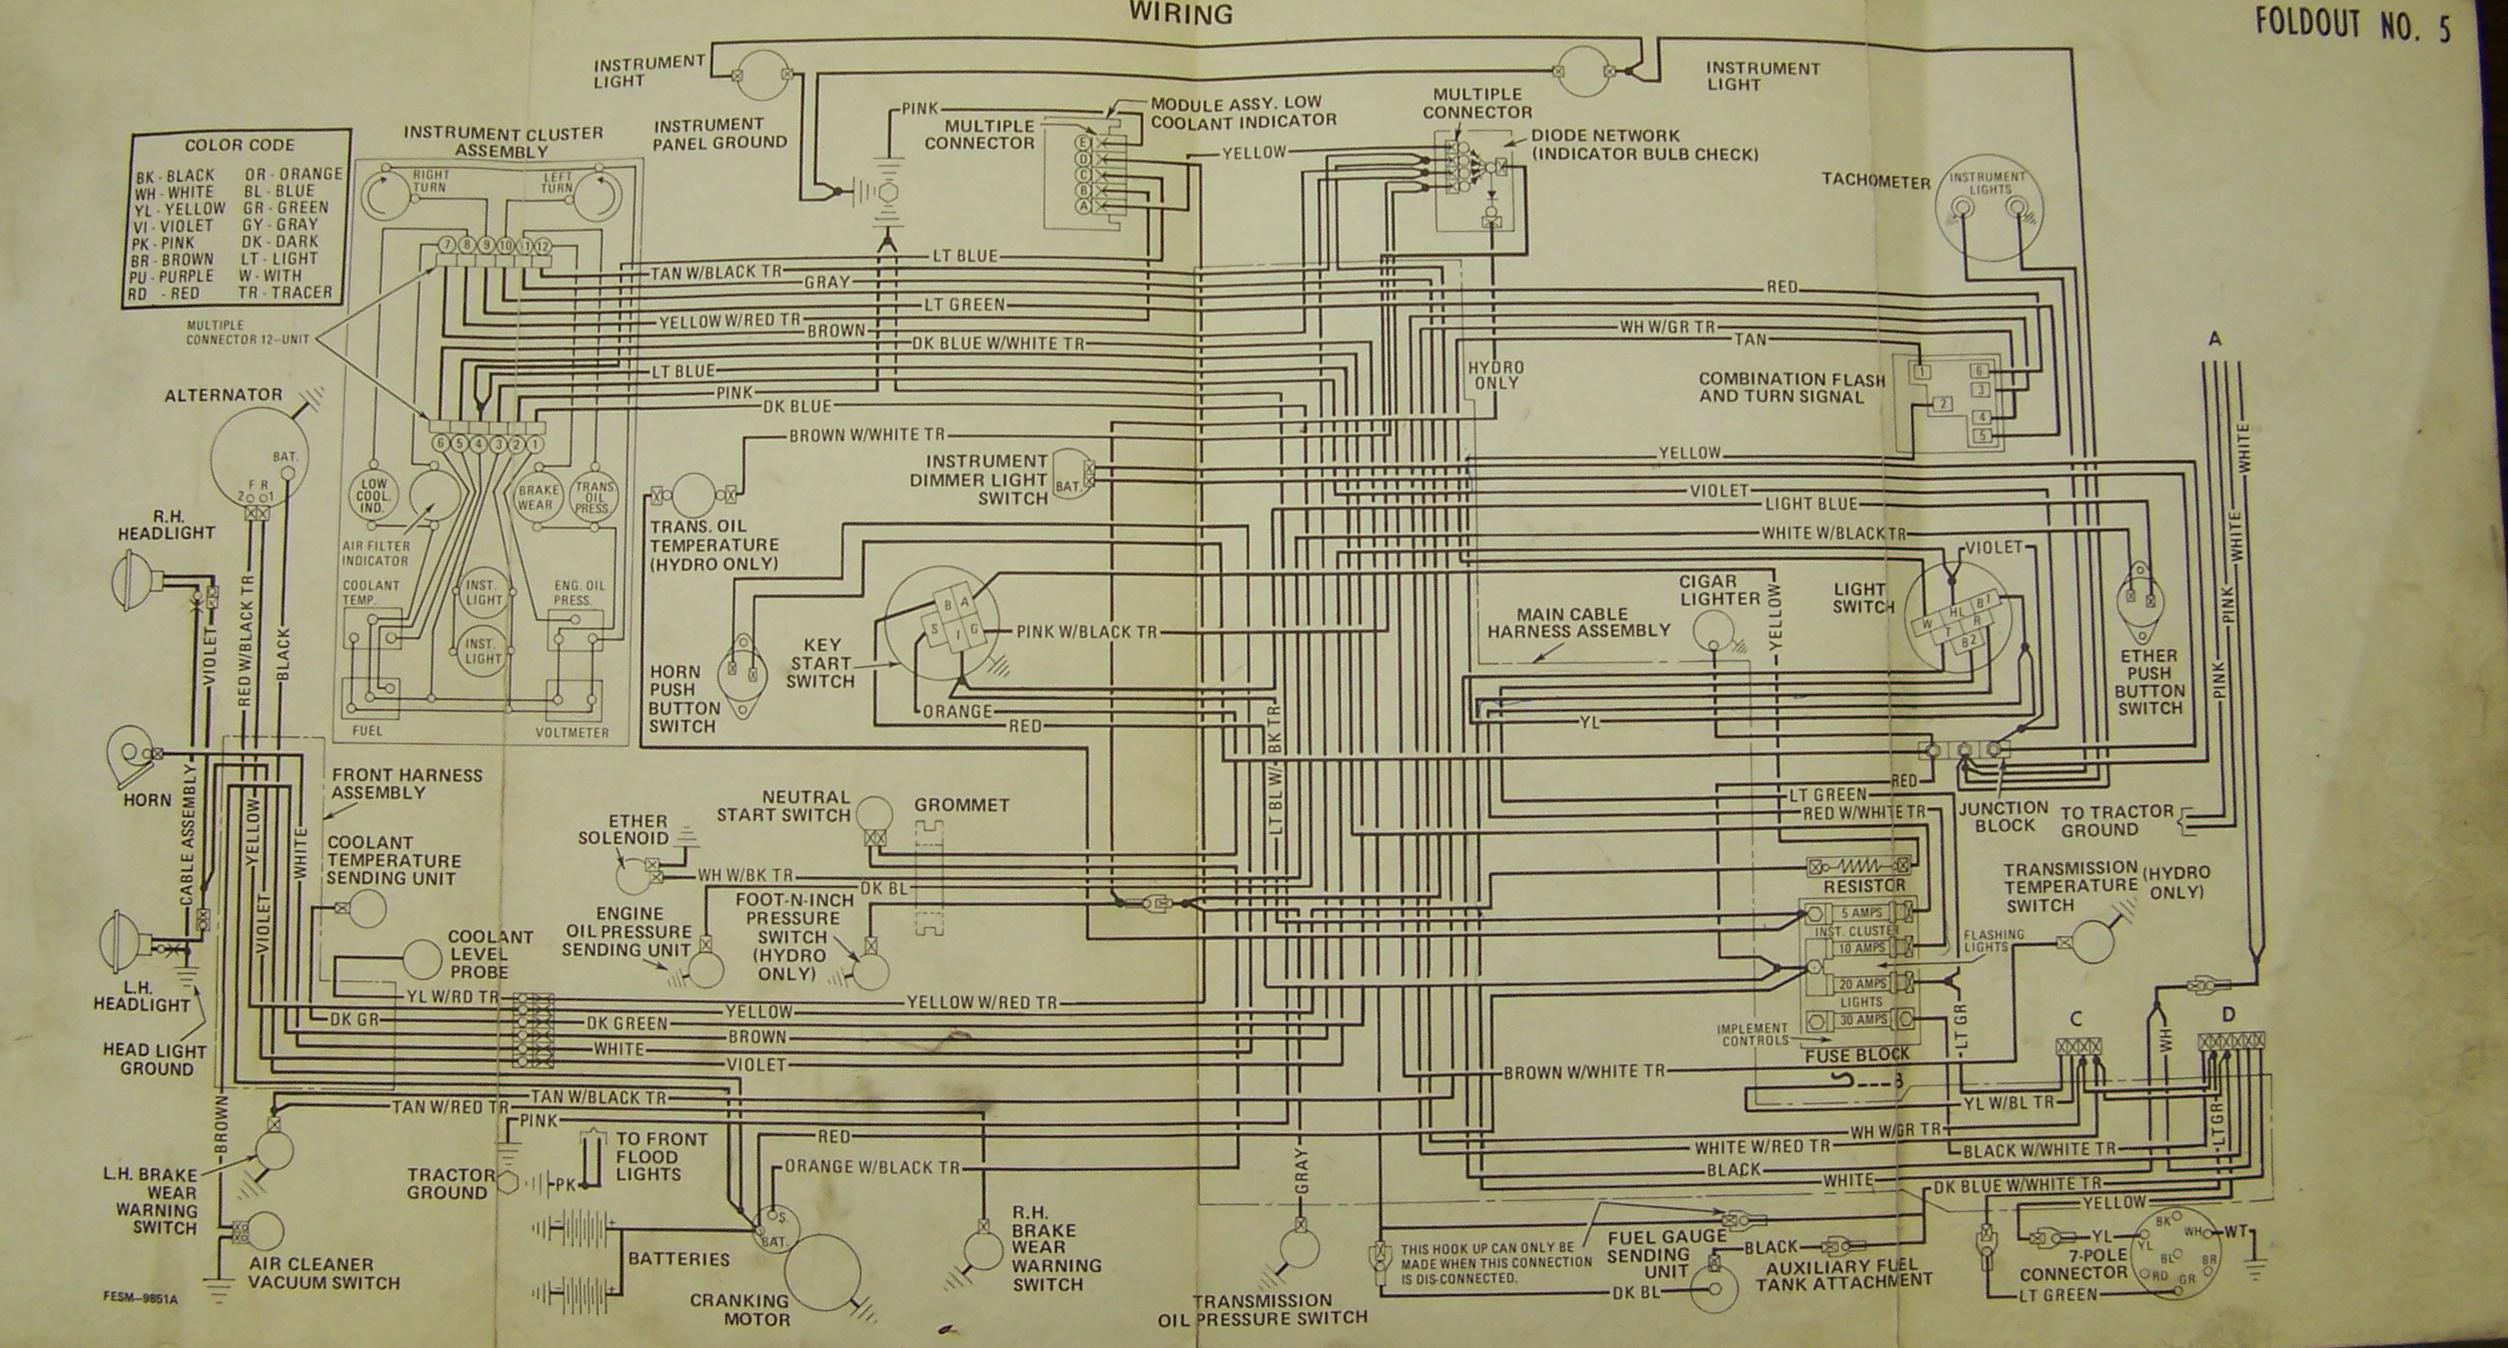 ih 444 tractor wiring diagram carter  amp  gruenewald co inc    ih    farmall    tractor     carter  amp  gruenewald co inc    ih    farmall    tractor